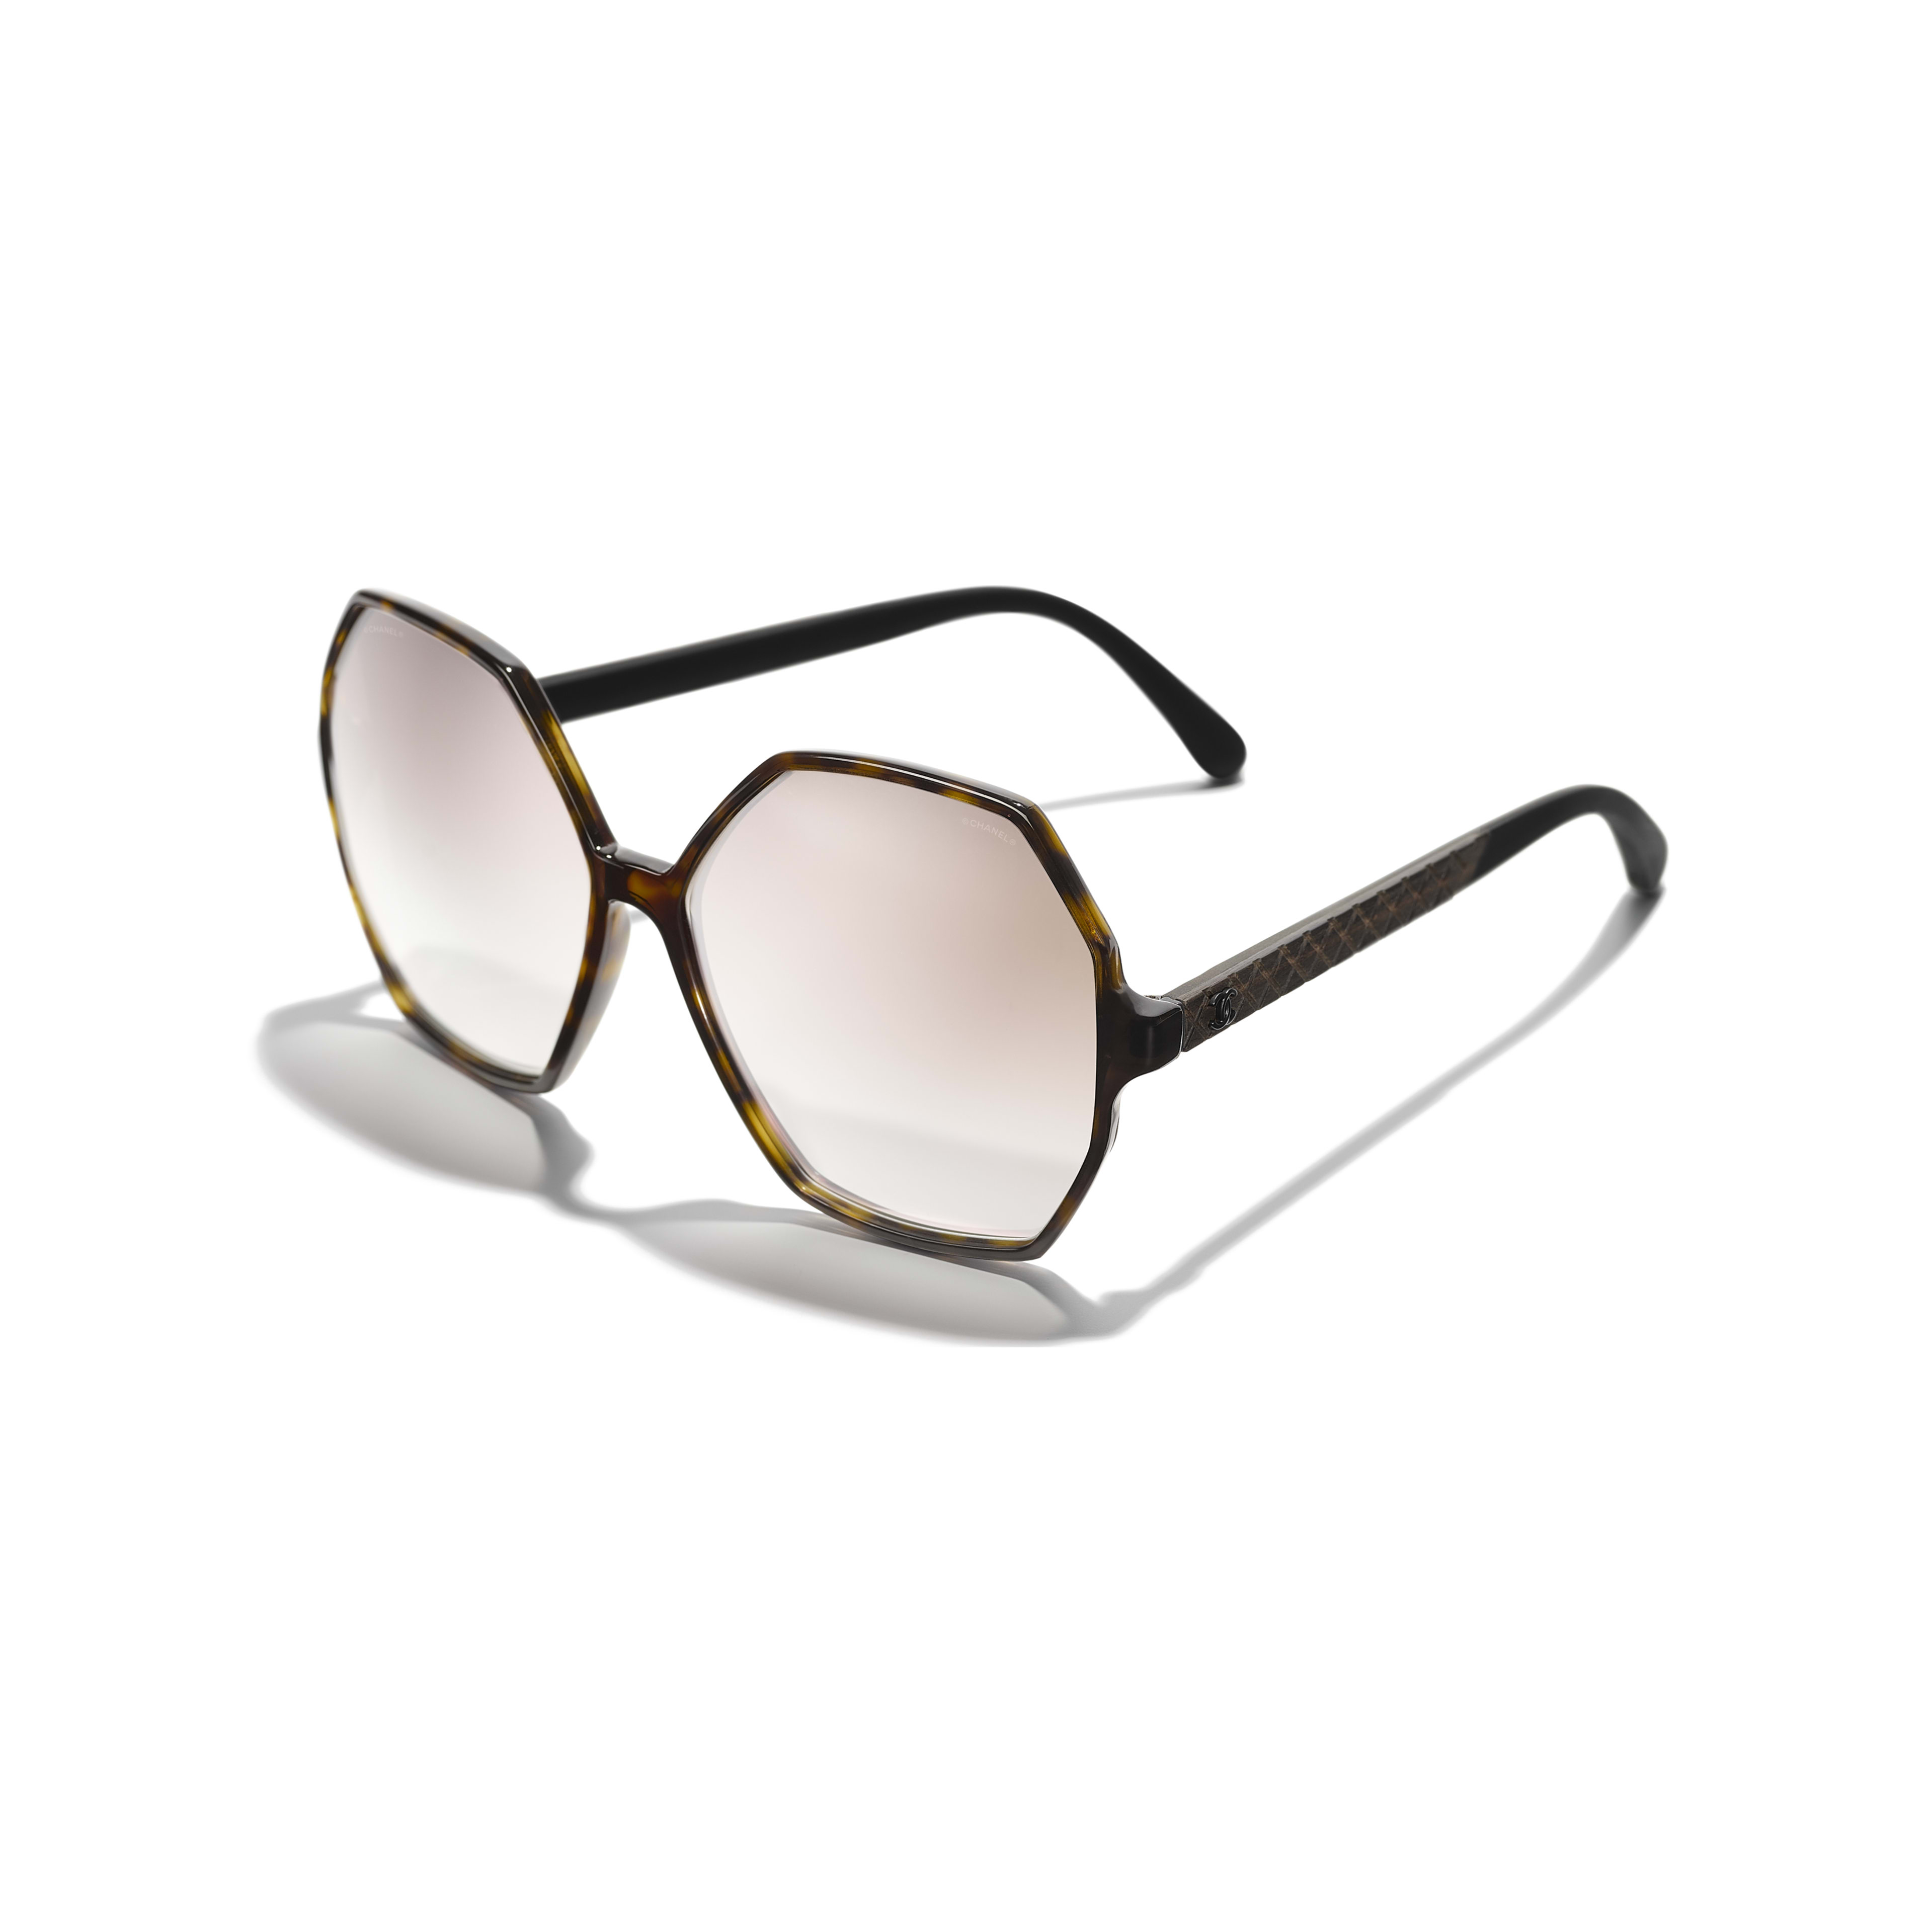 Round Sunglasses - Dark Tortoise - Acetate, Wood & Rubber - Extra view - see full sized version